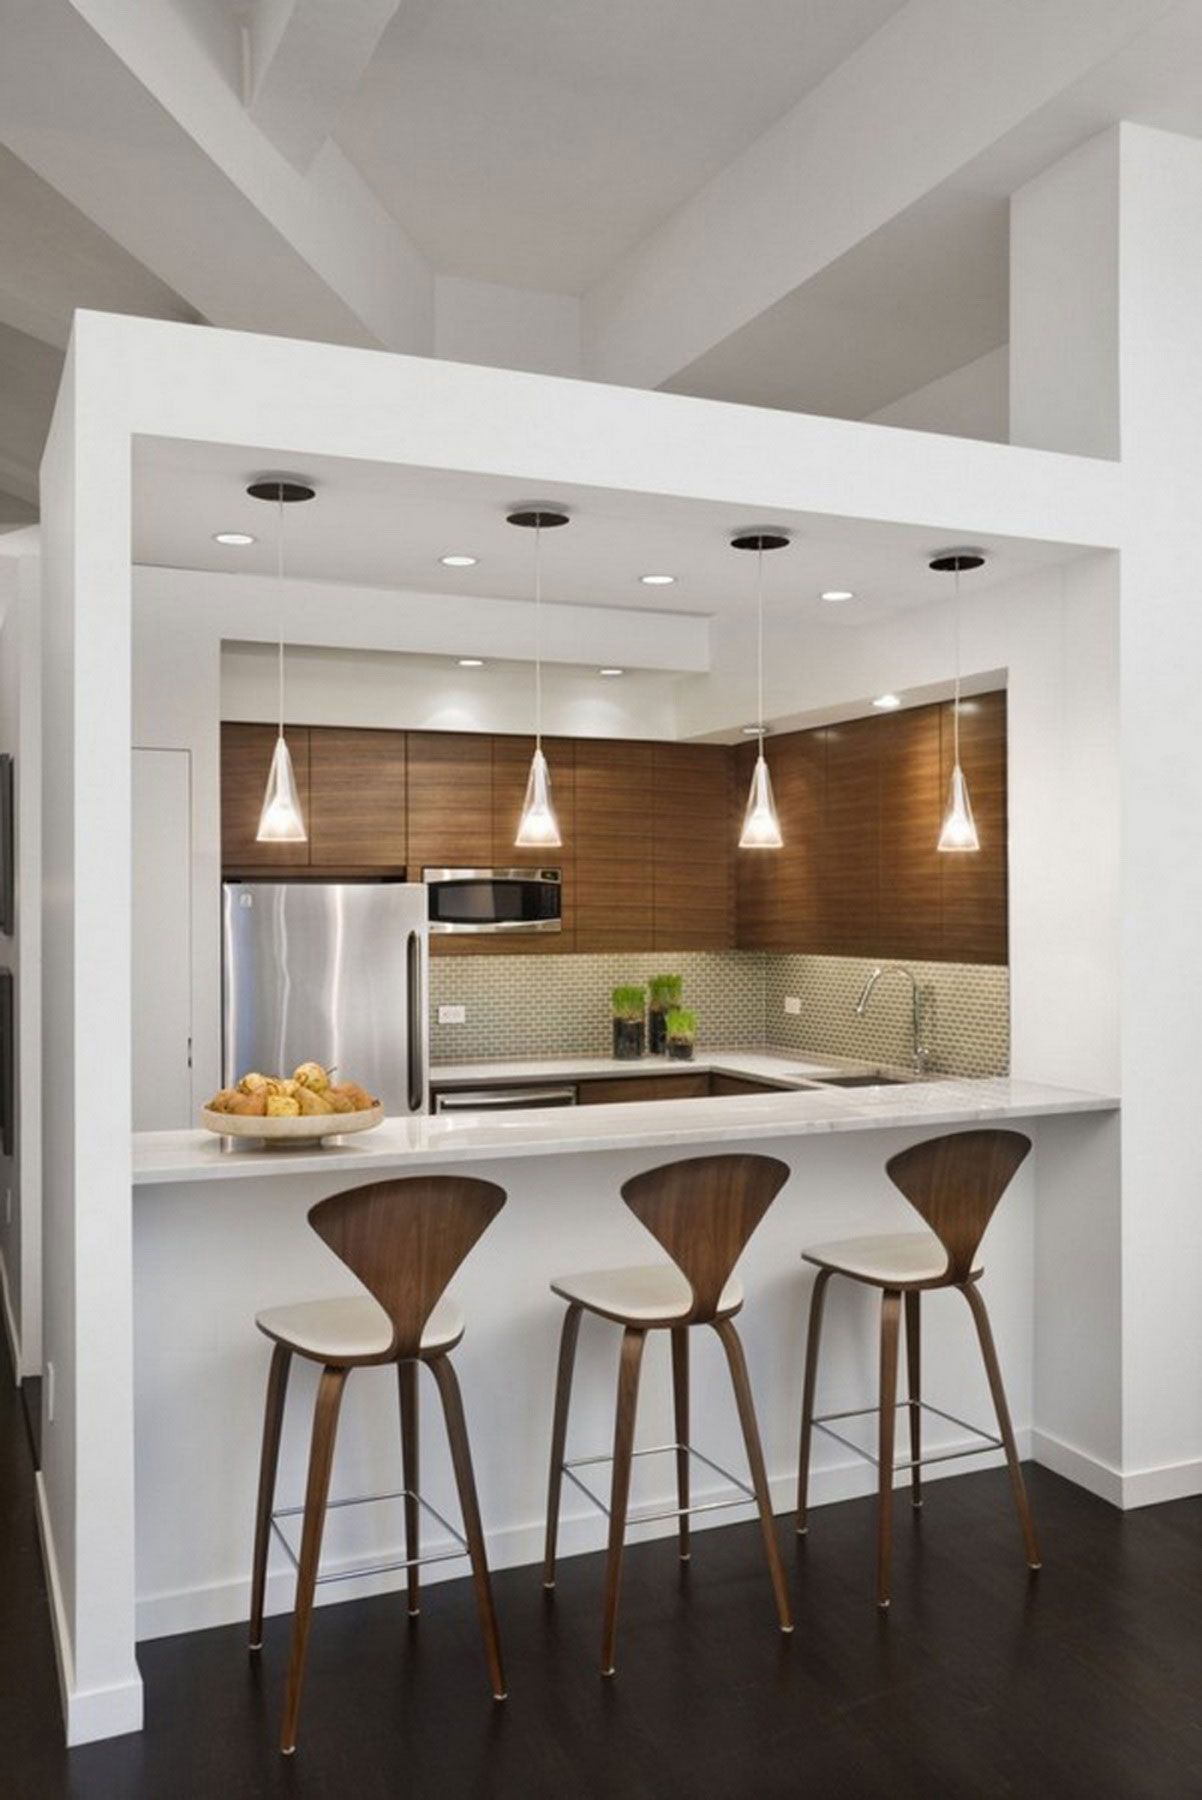 Check Out Small Kitchen Design Ideas What These Kitchens Lack In Space They